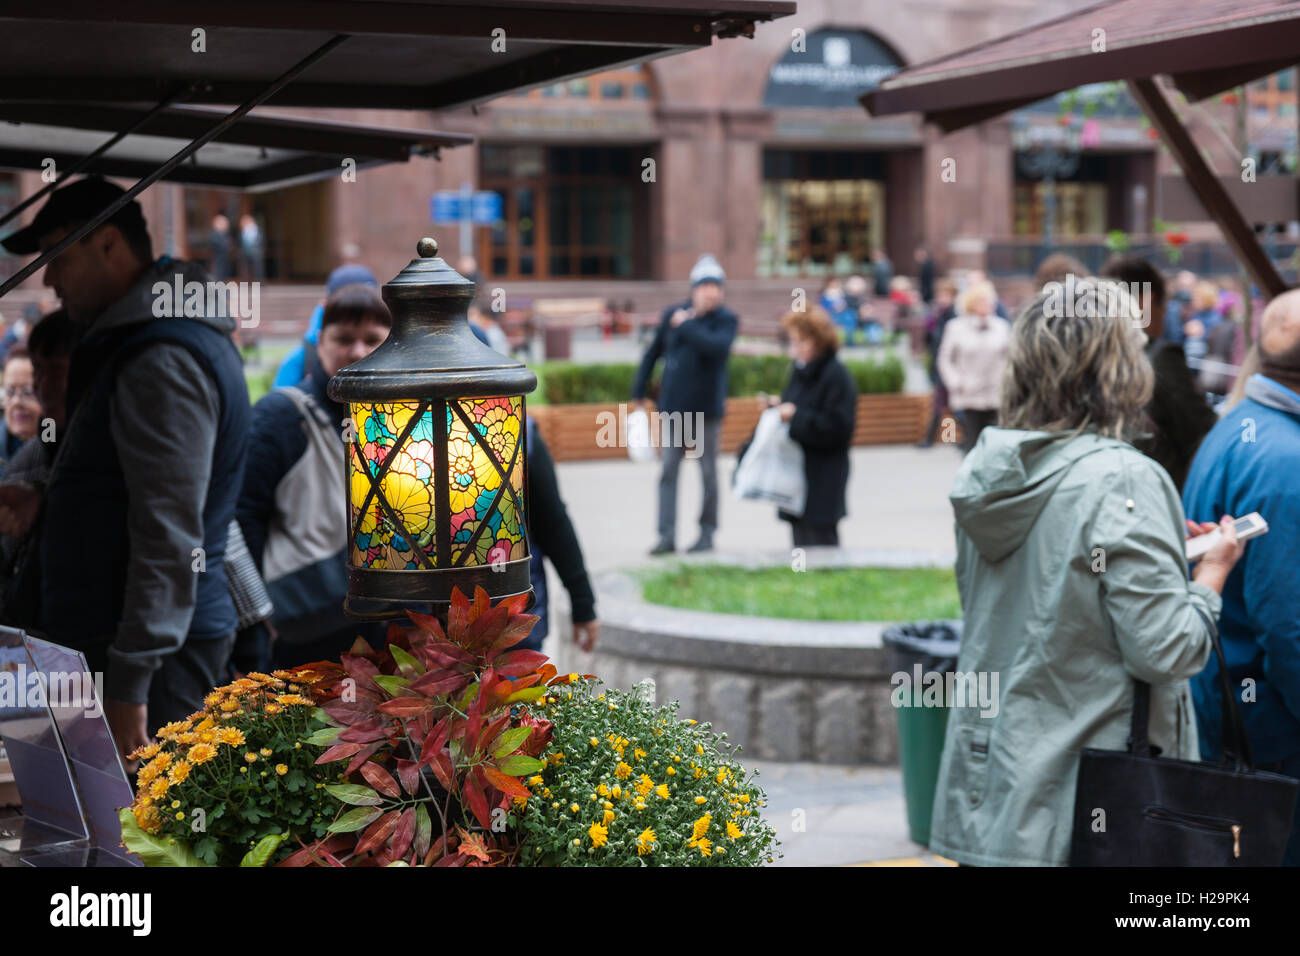 Food markets of Moscow. Markets, fairs of Moscow and Moscow region